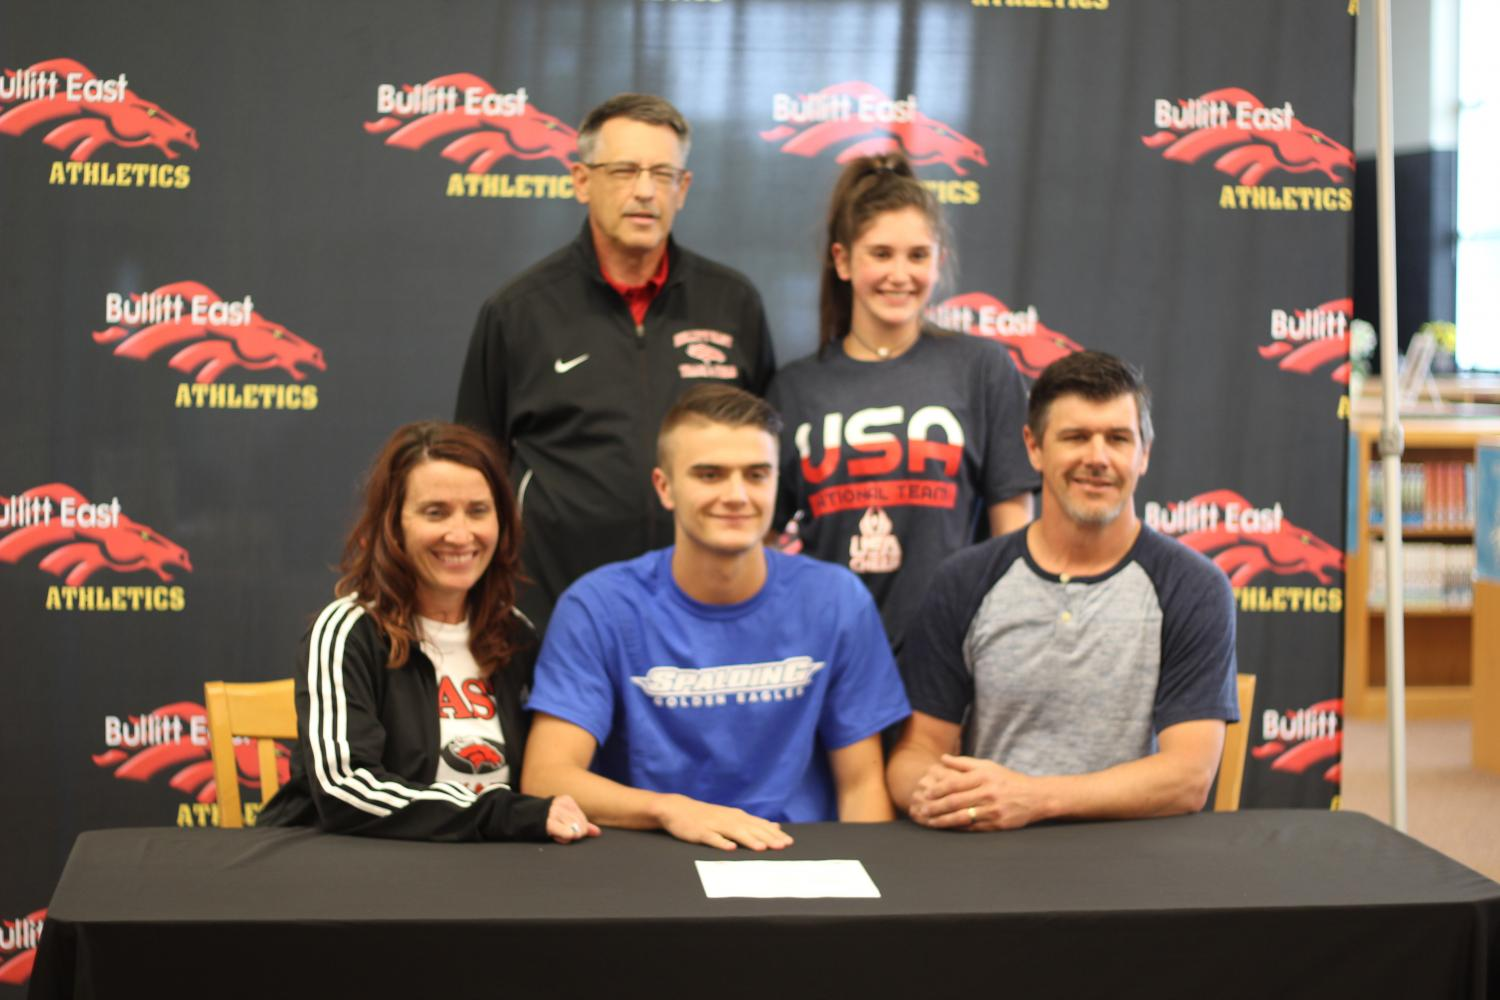 On+May+1%2C+Senior+Connor+Green+signs+with+Spalding+University+to+run+track.+Along+with+him+is+his+family+and+his+track+and+field+coach%2C+Lenny+Raley.